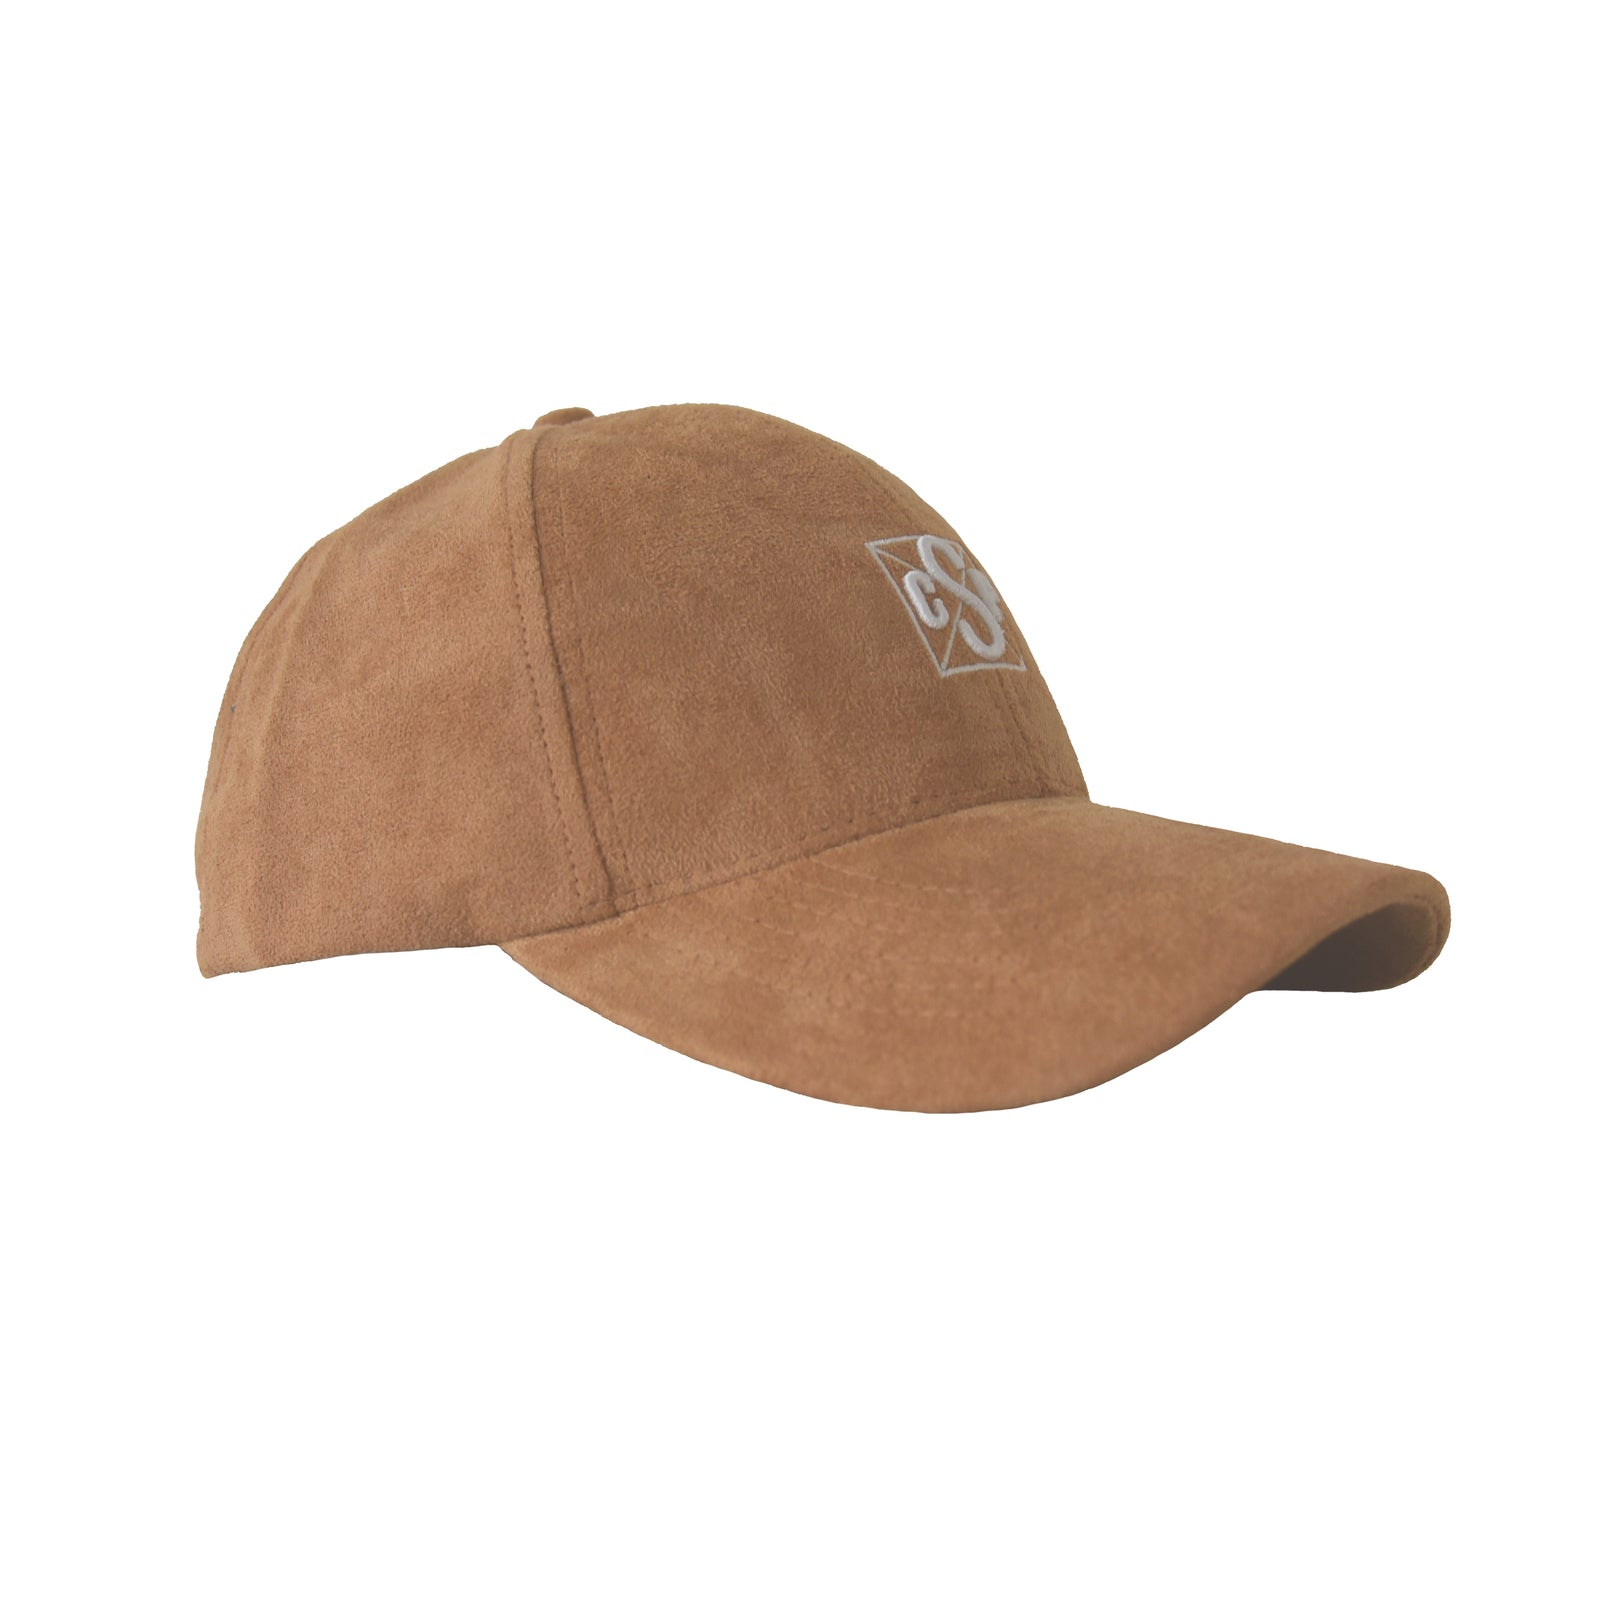 Baseball cap sand suede